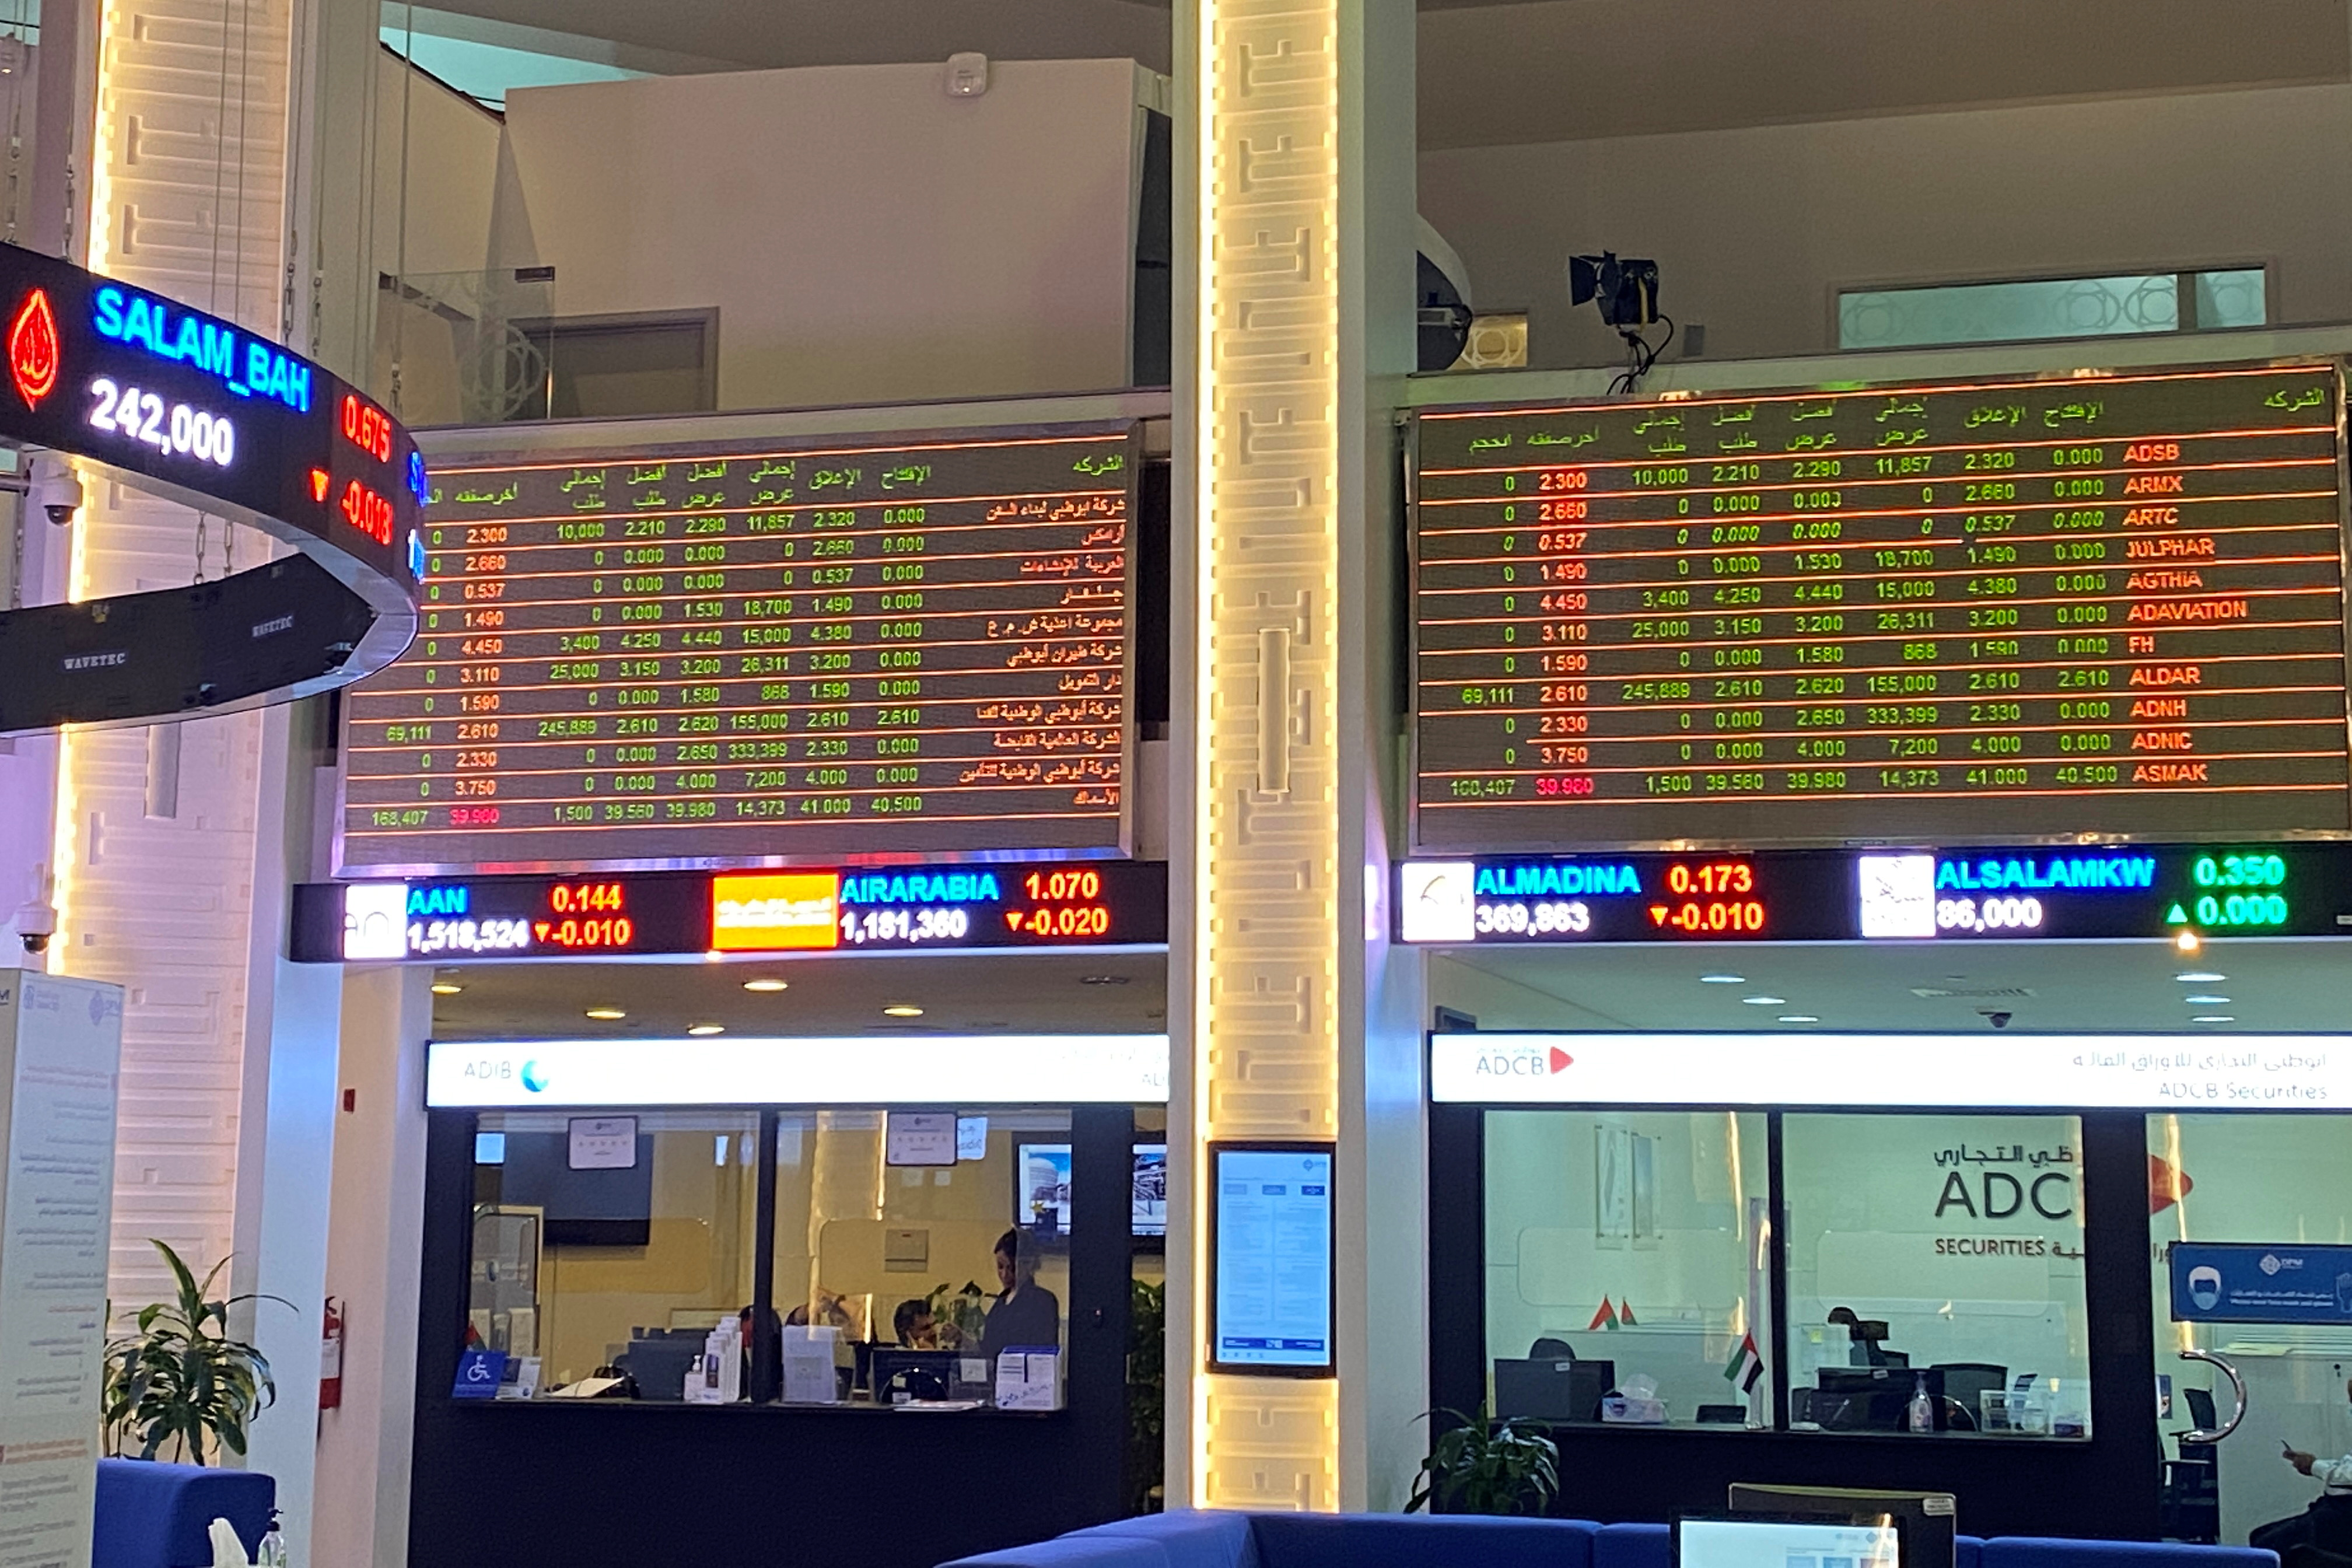 Electronic boards showing stock information are pictured at the stock market, in Dubai, United Arab Emirates, November 5, 2020. REUTERS/Abdel Hadi Ramahi